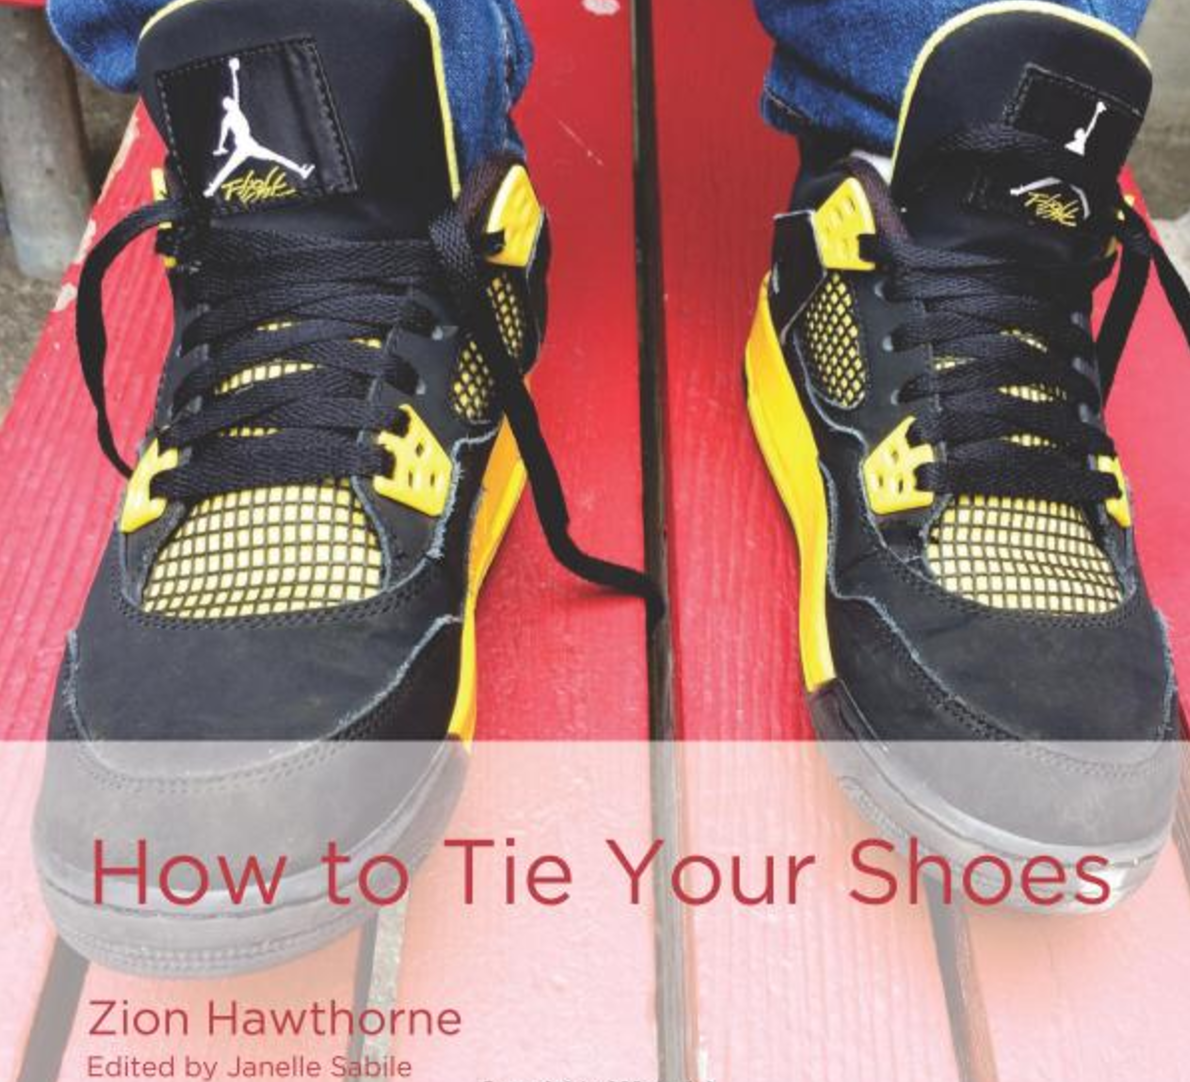 How to Tie Your Shoes   Zion Hawthorne shares his mother's teachings in How to Tie Your Shoes. Instruction on singular and plural nouns supports beginning reading.   Buy this book.